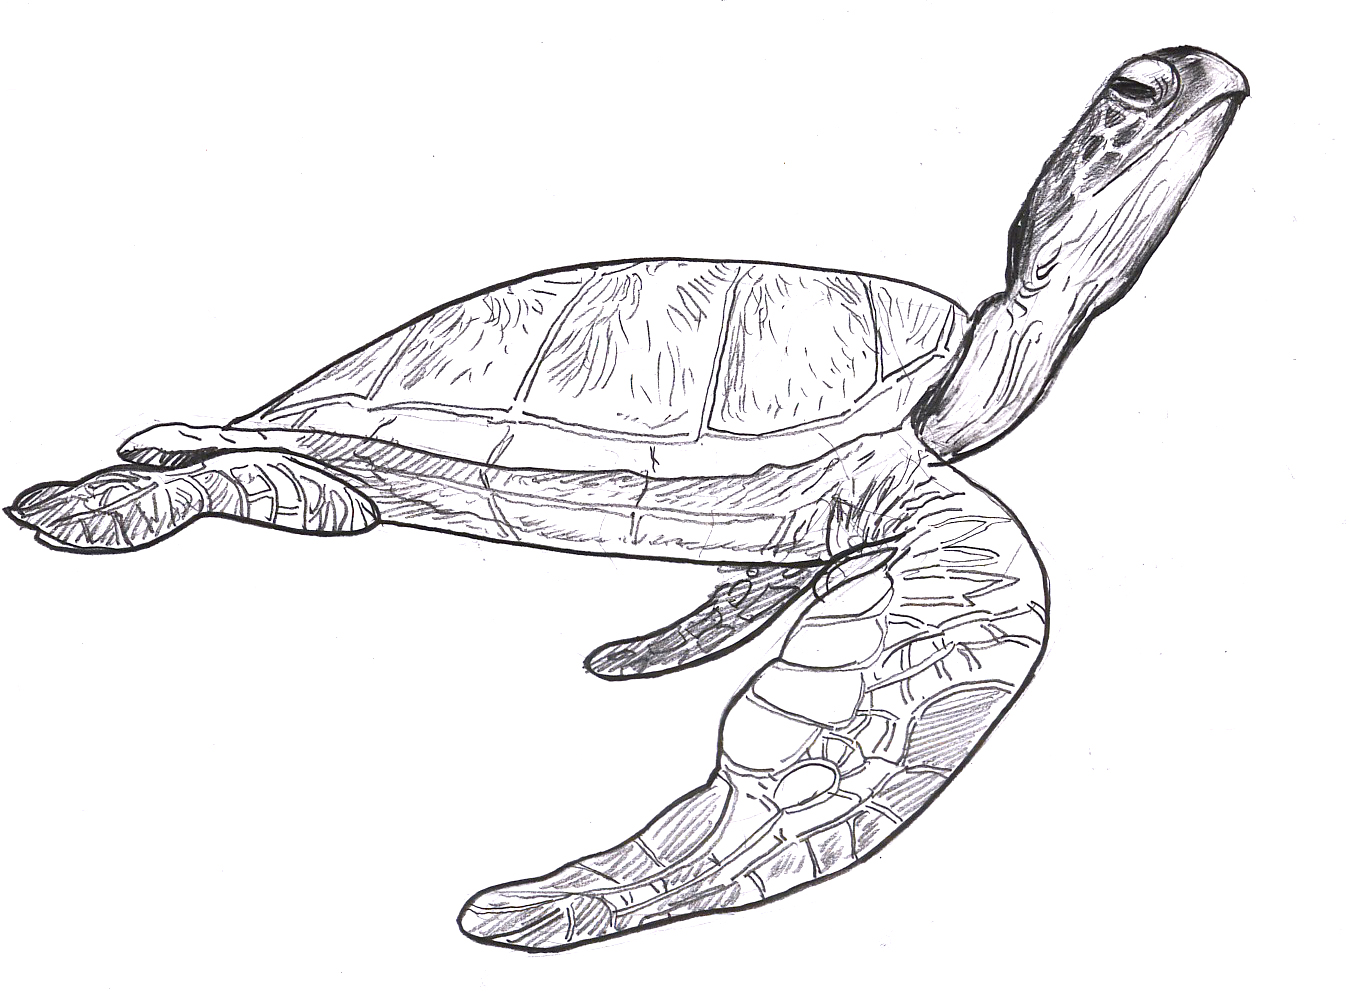 Uncategorized Drawing Of Sea Turtle sea turtles steve brodner i cant think of too many things more beautiful than a turtle my black and white drawing doesnt do any justice to these amazing creatures